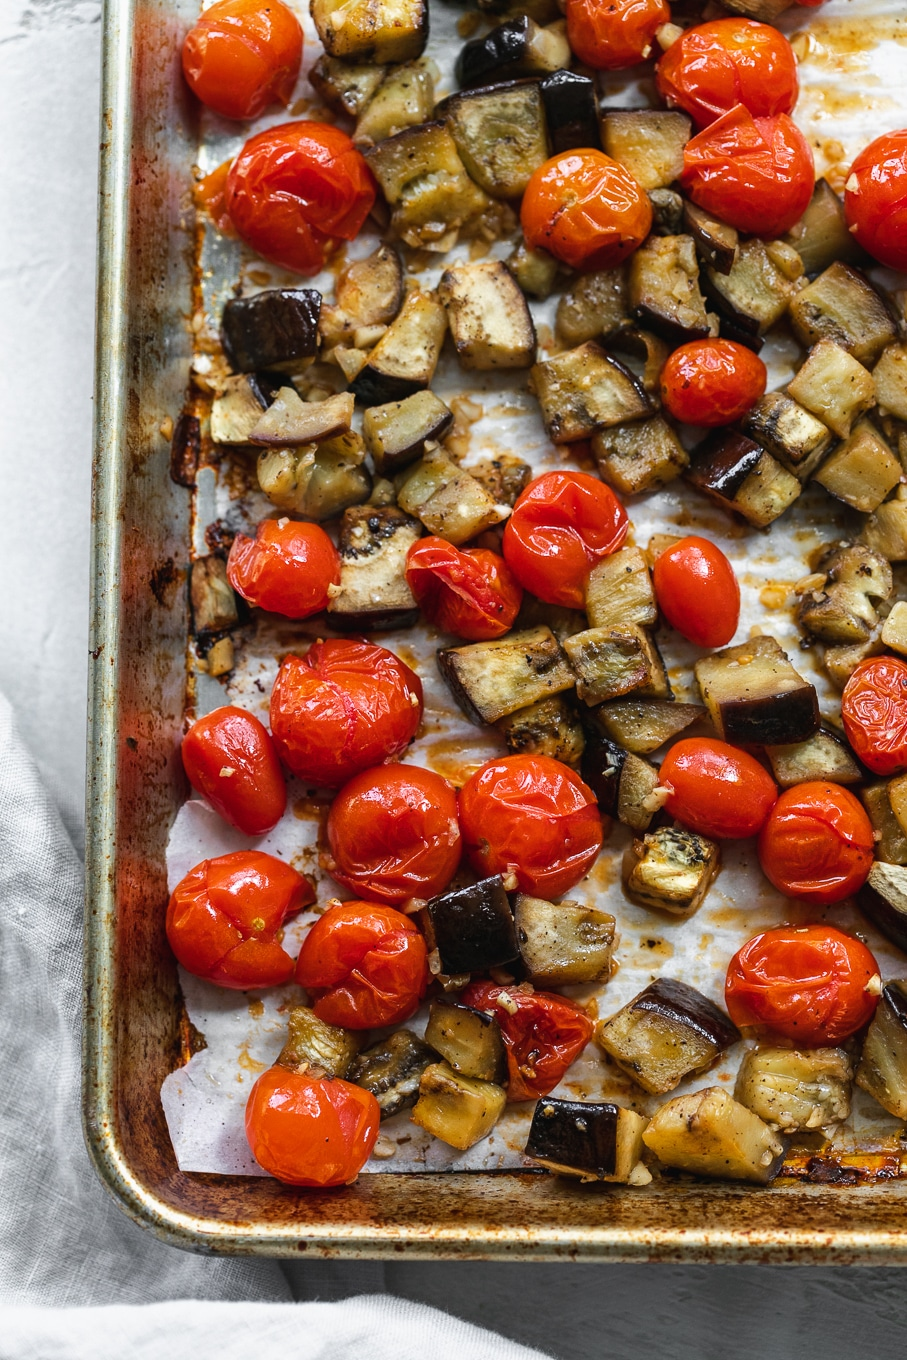 Overhead close up shot of a sheet pan filled with roasted tomatoes and eggplant